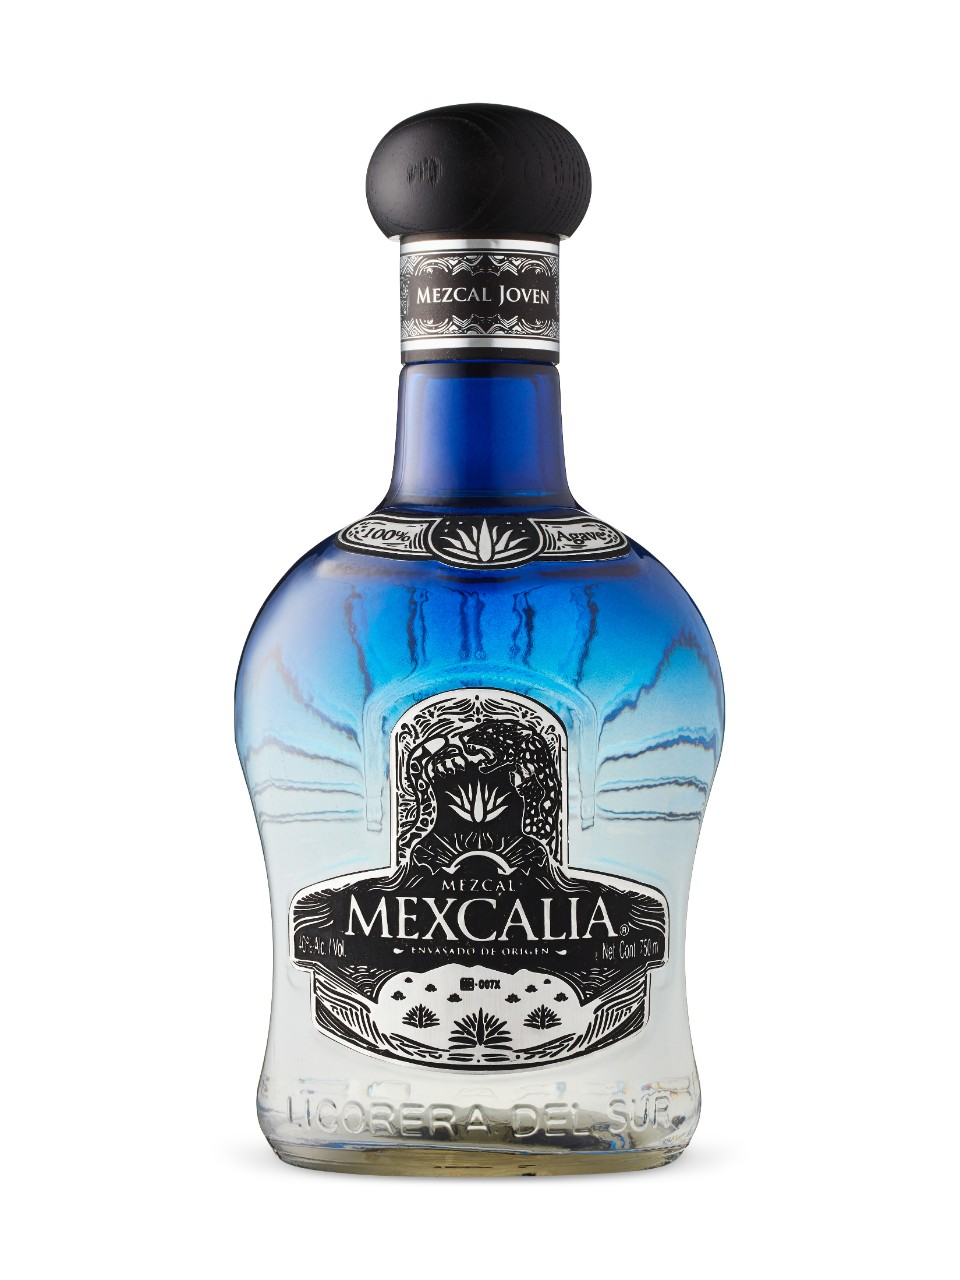 Image for Mexcalia Mezcale from LCBO